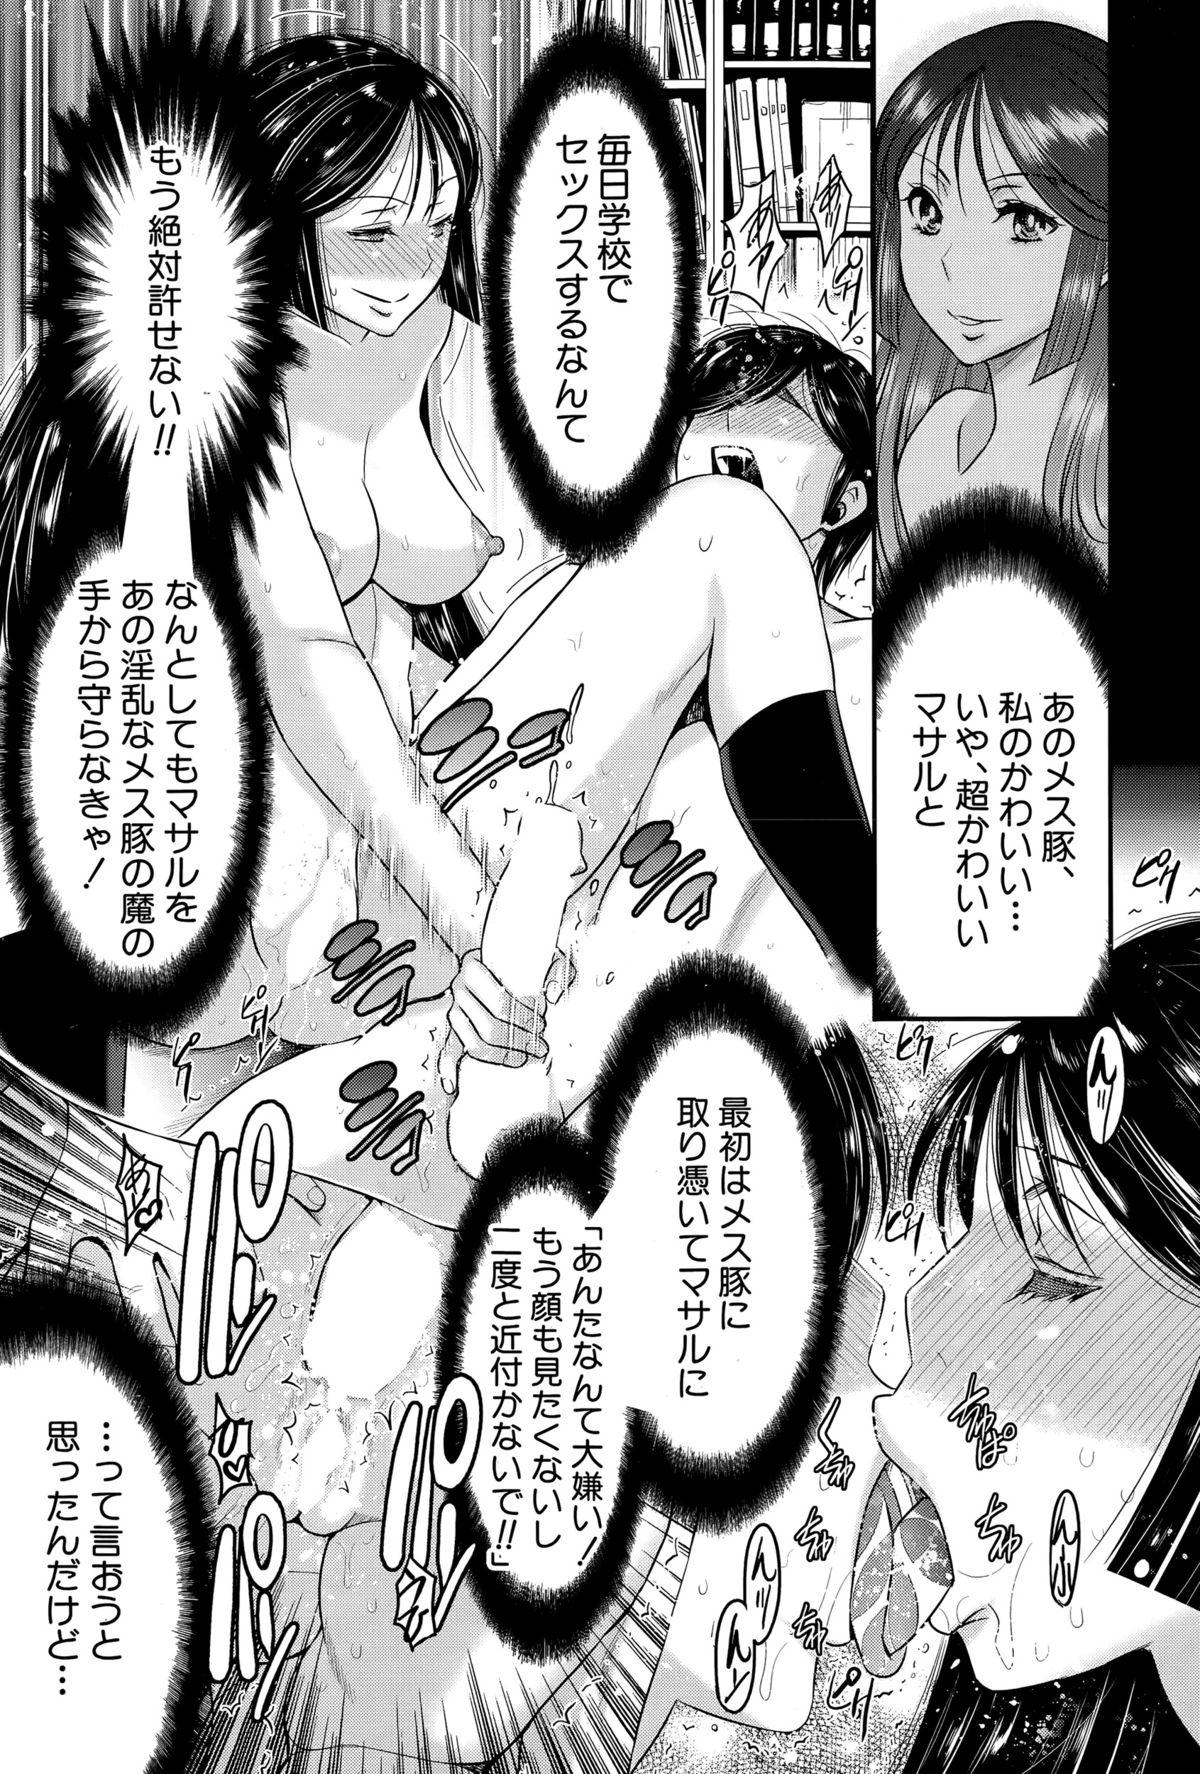 BUSTER COMIC 2015-07 248